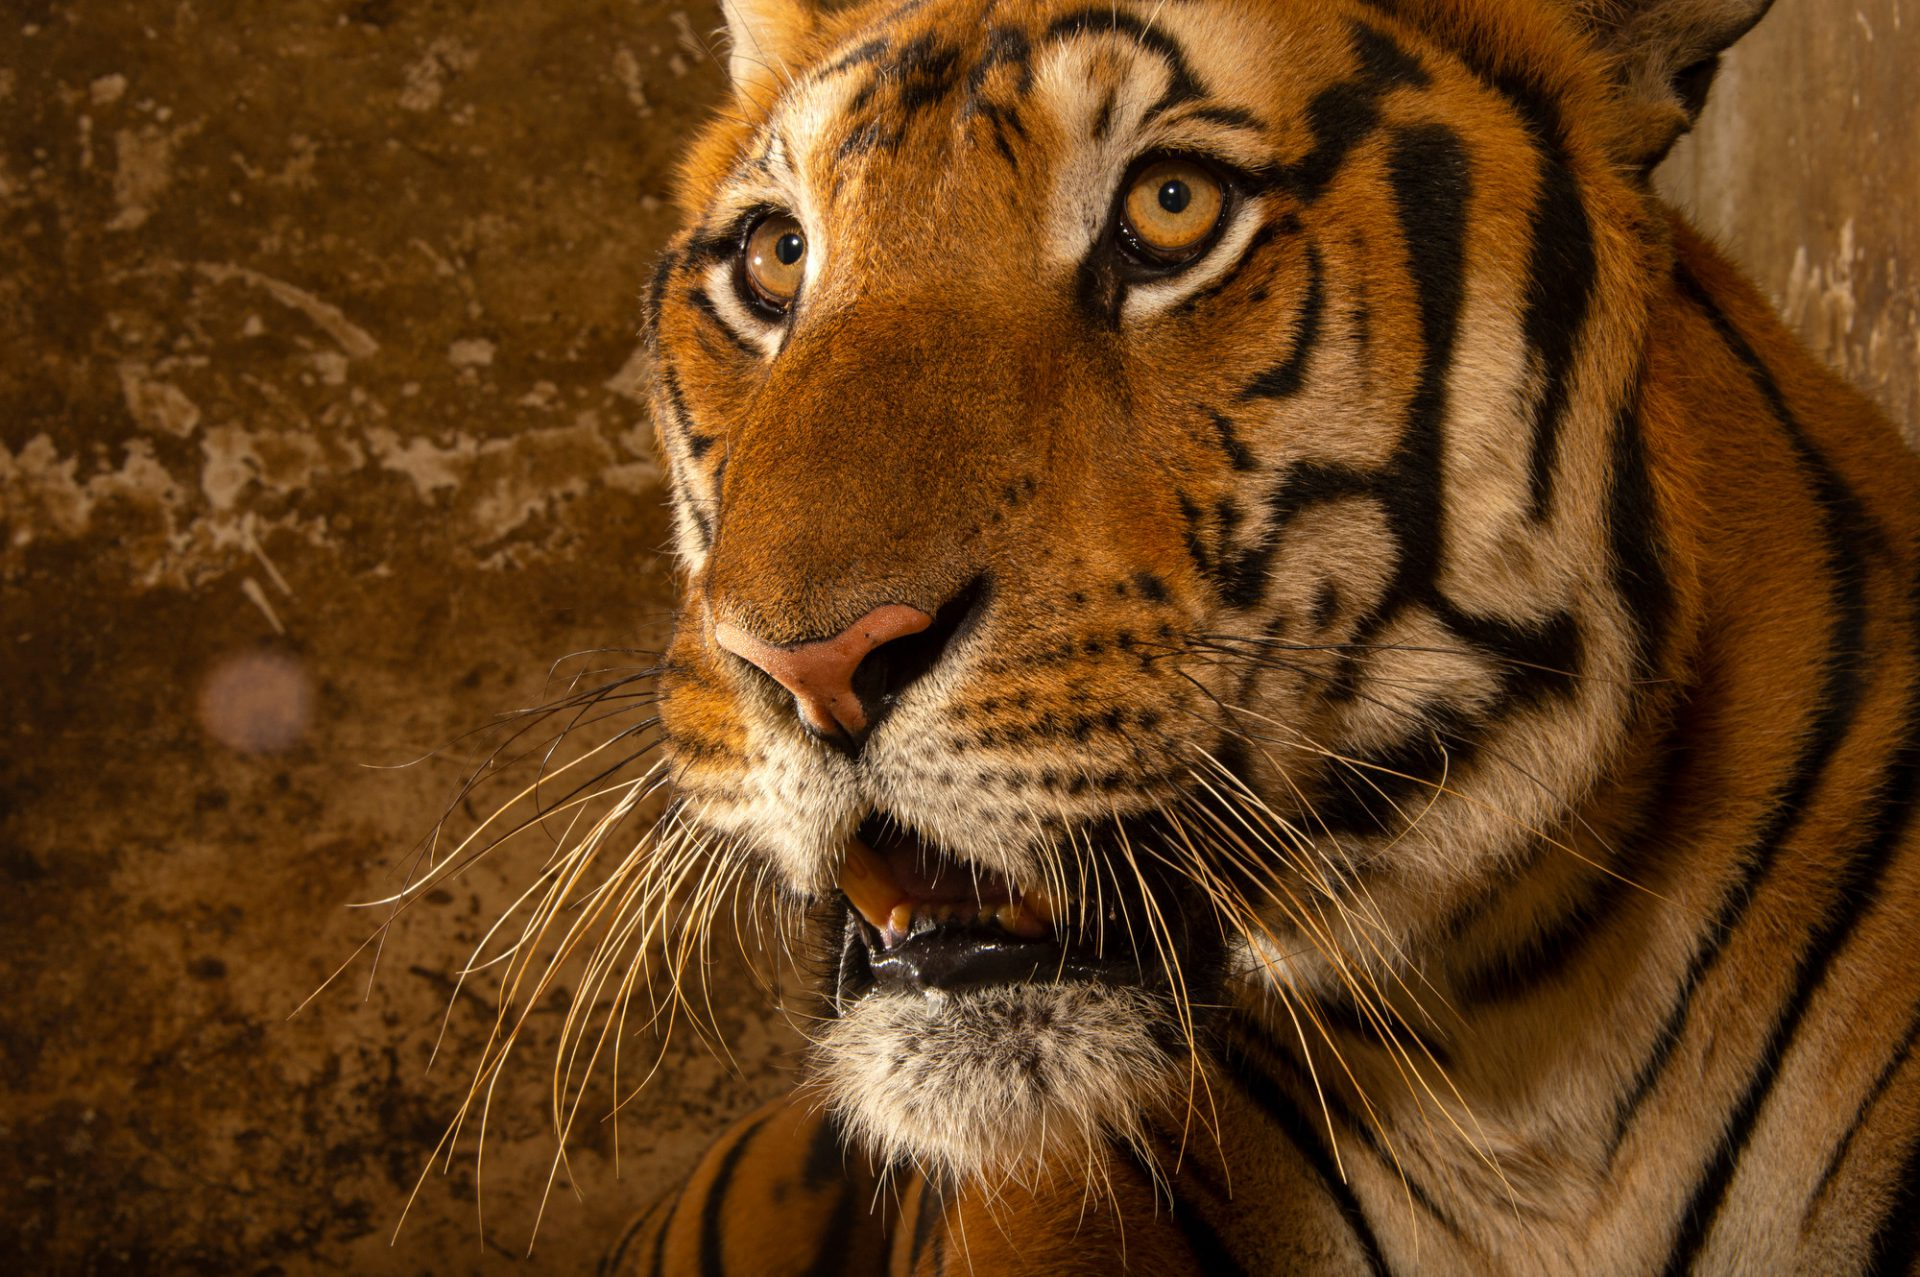 Photo: A federally endangered South China tiger (Panther tigris amoyensis) at Suzhou Zoo. This species is nearly extinct in the wild, and numbers only 100 or so in captivity, all of which come from six founders many years ago.